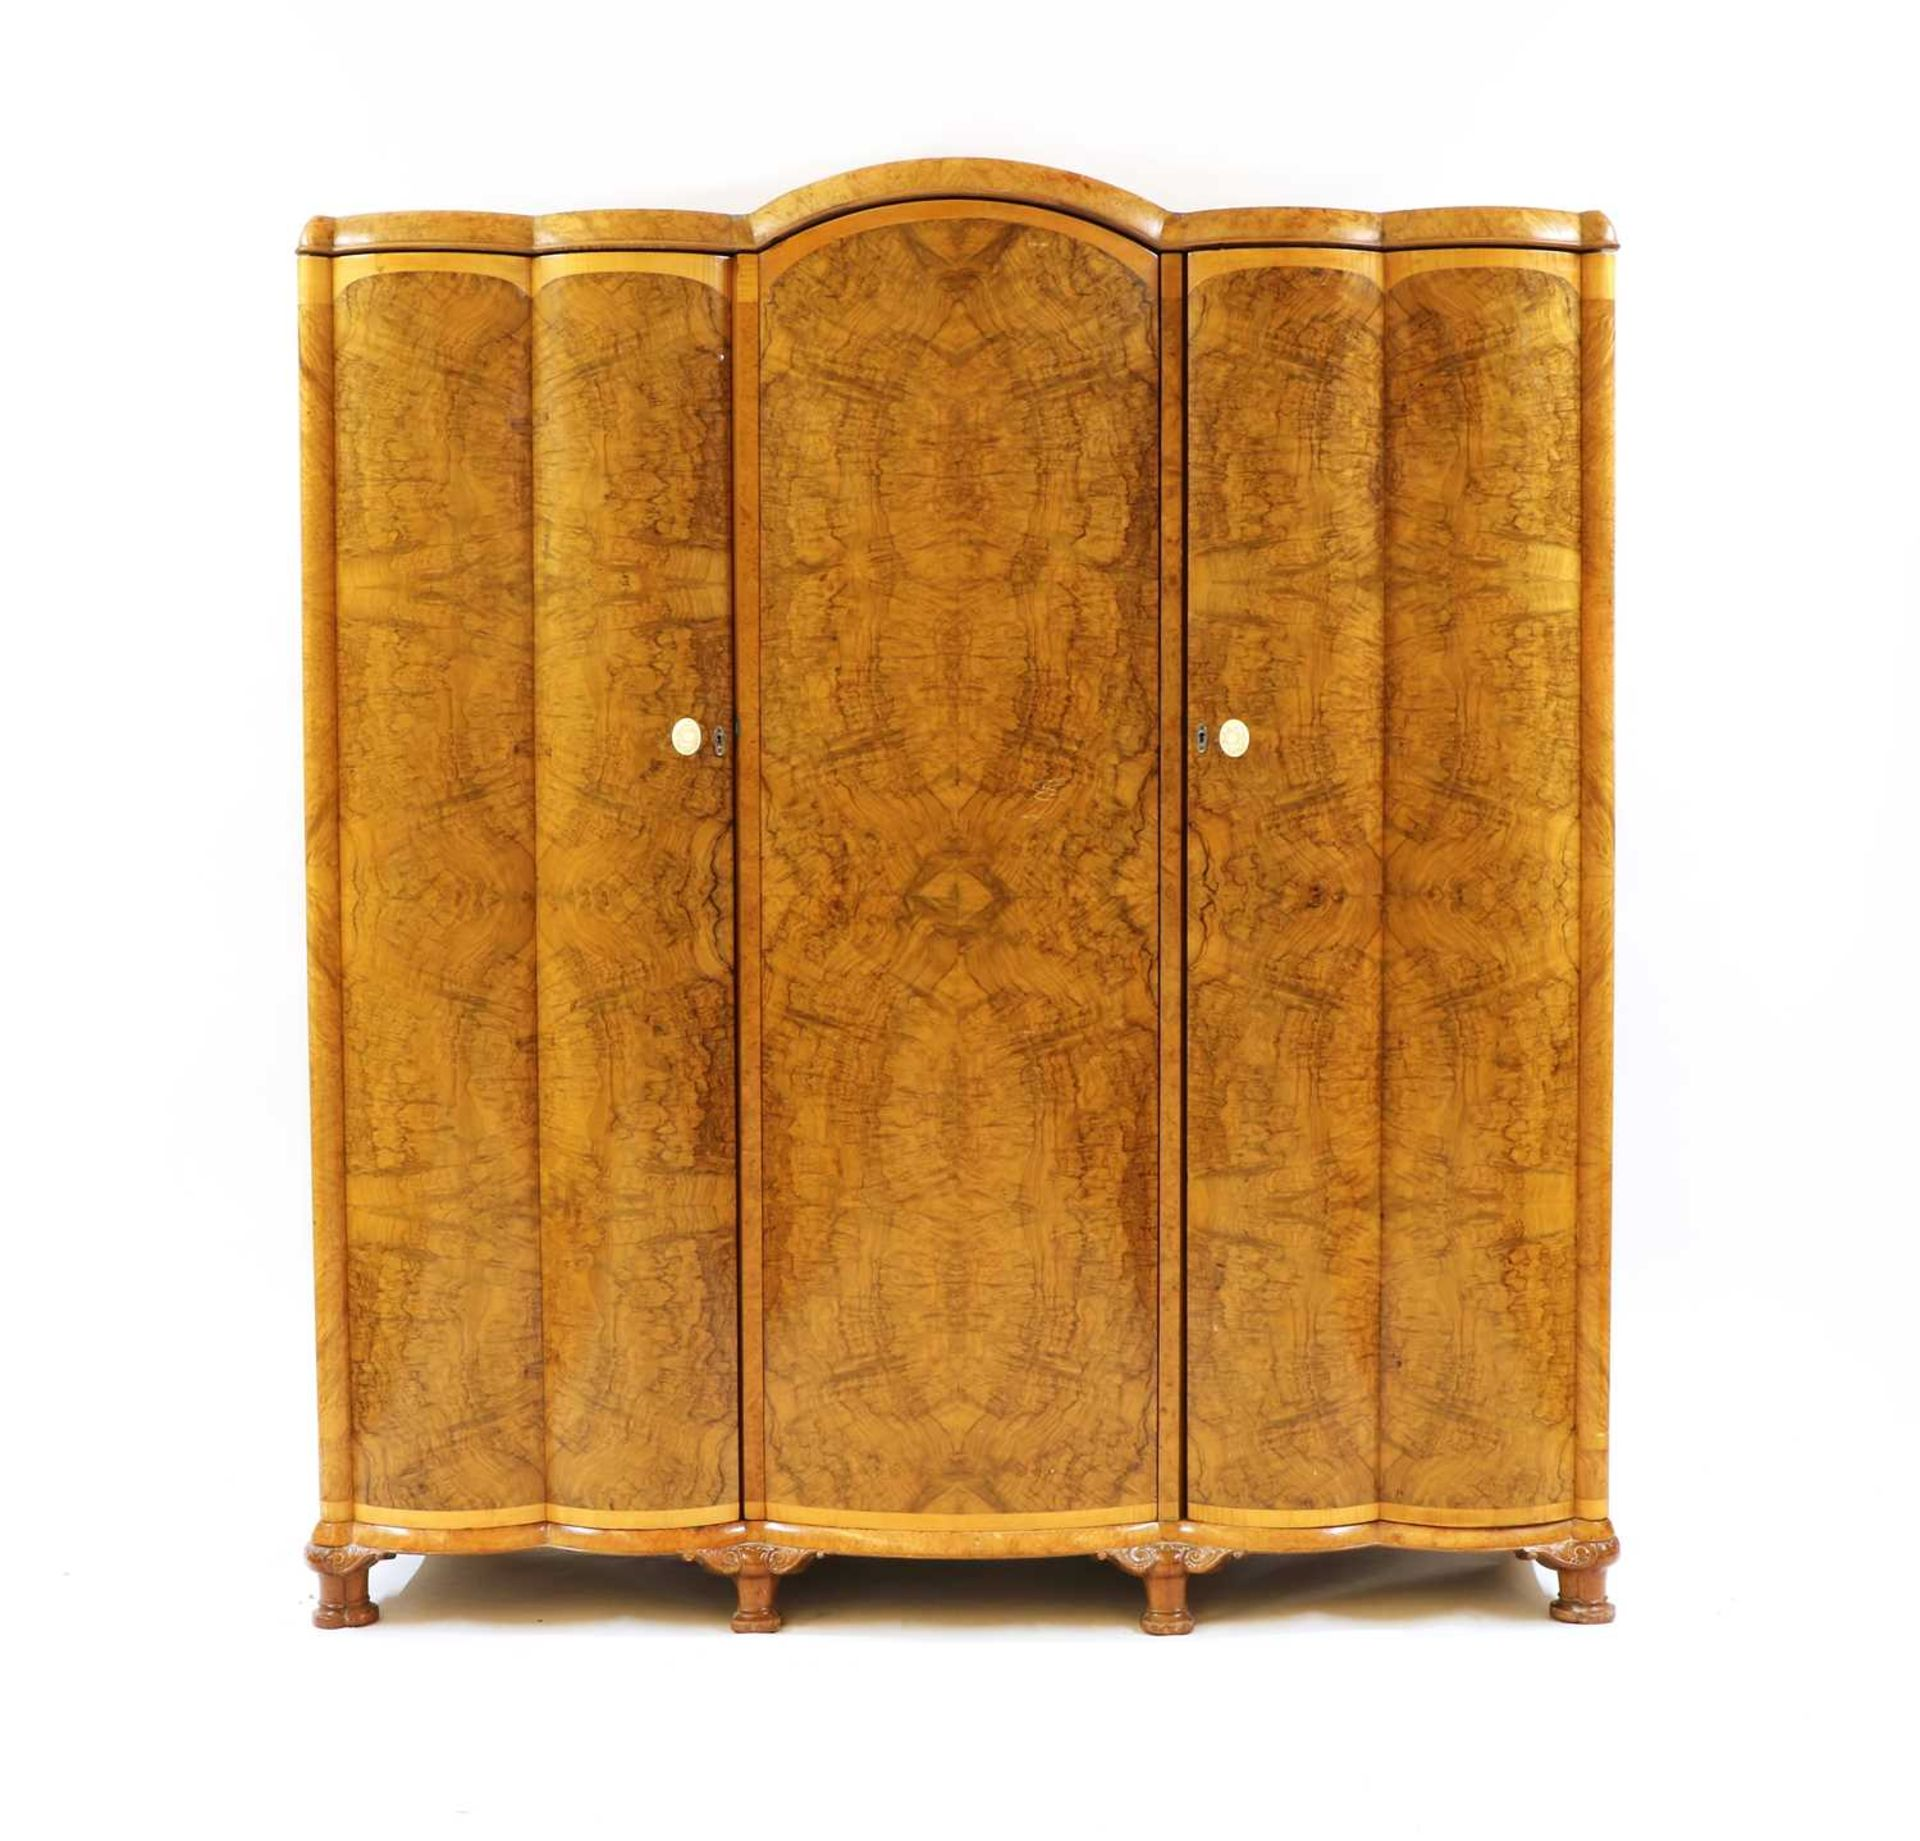 An Art Deco burr walnut and maple bedroom suite, - Image 28 of 45